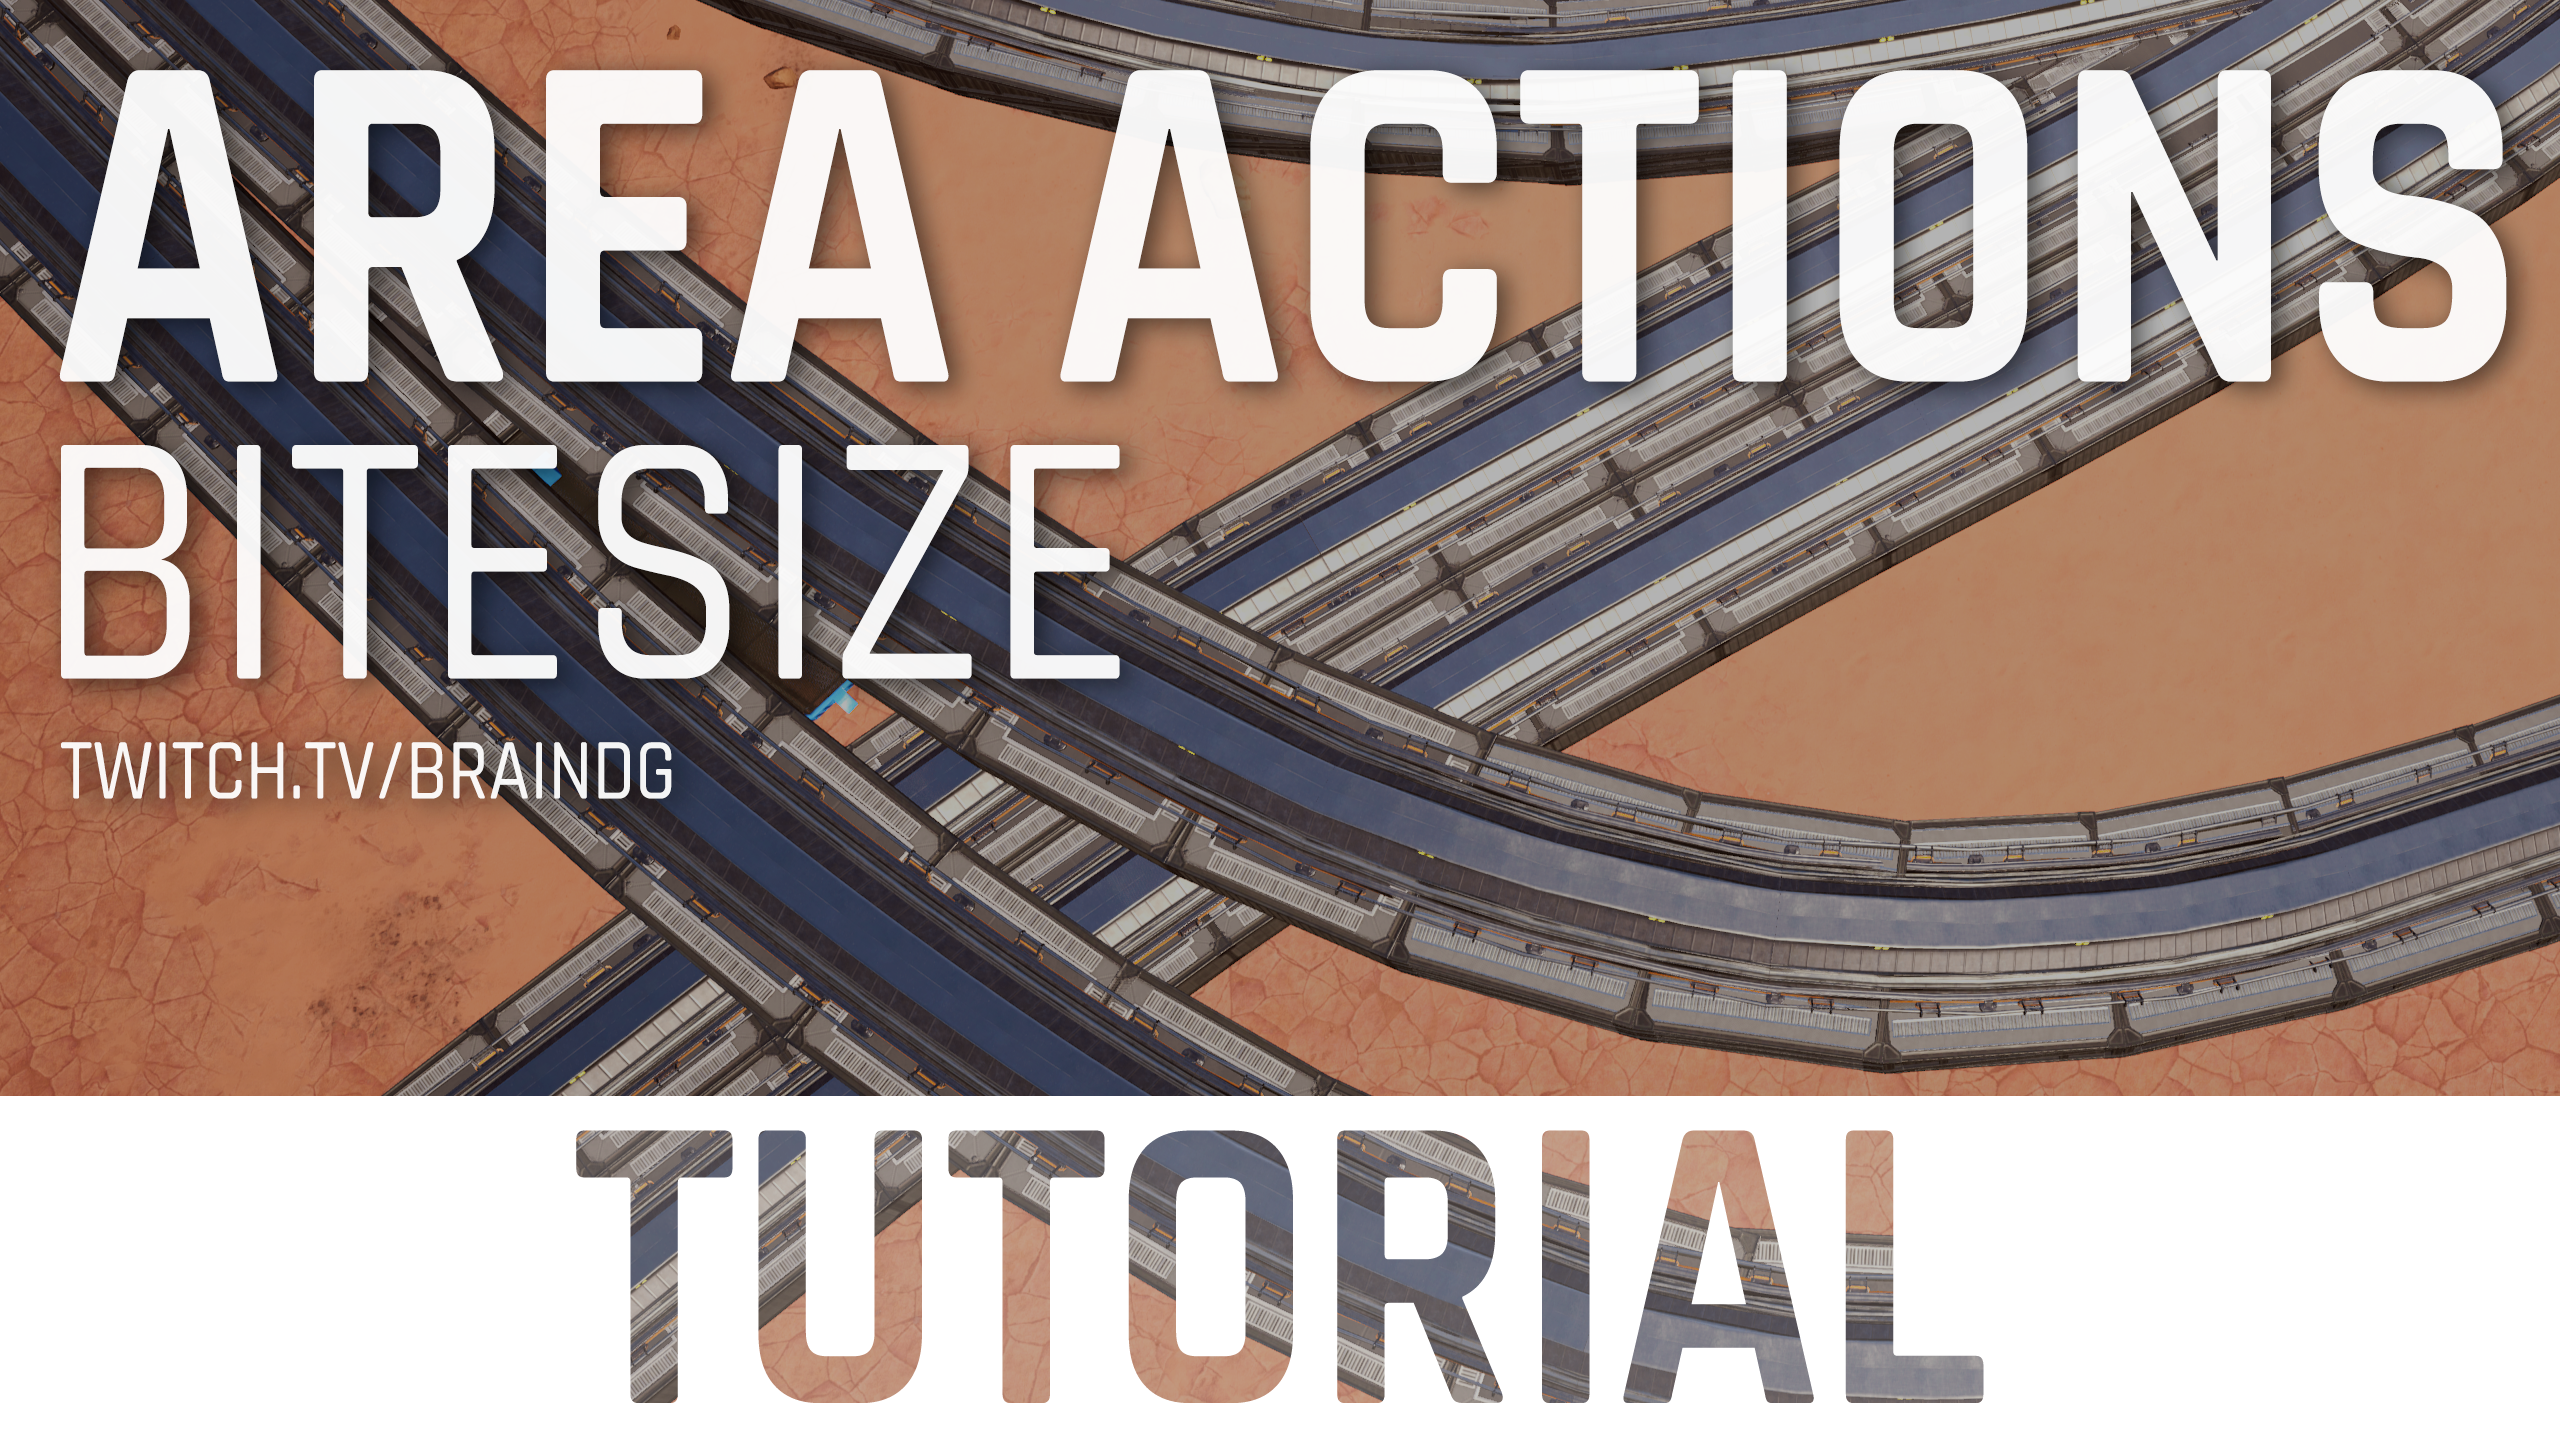 Bitesize Area Action Tutorials